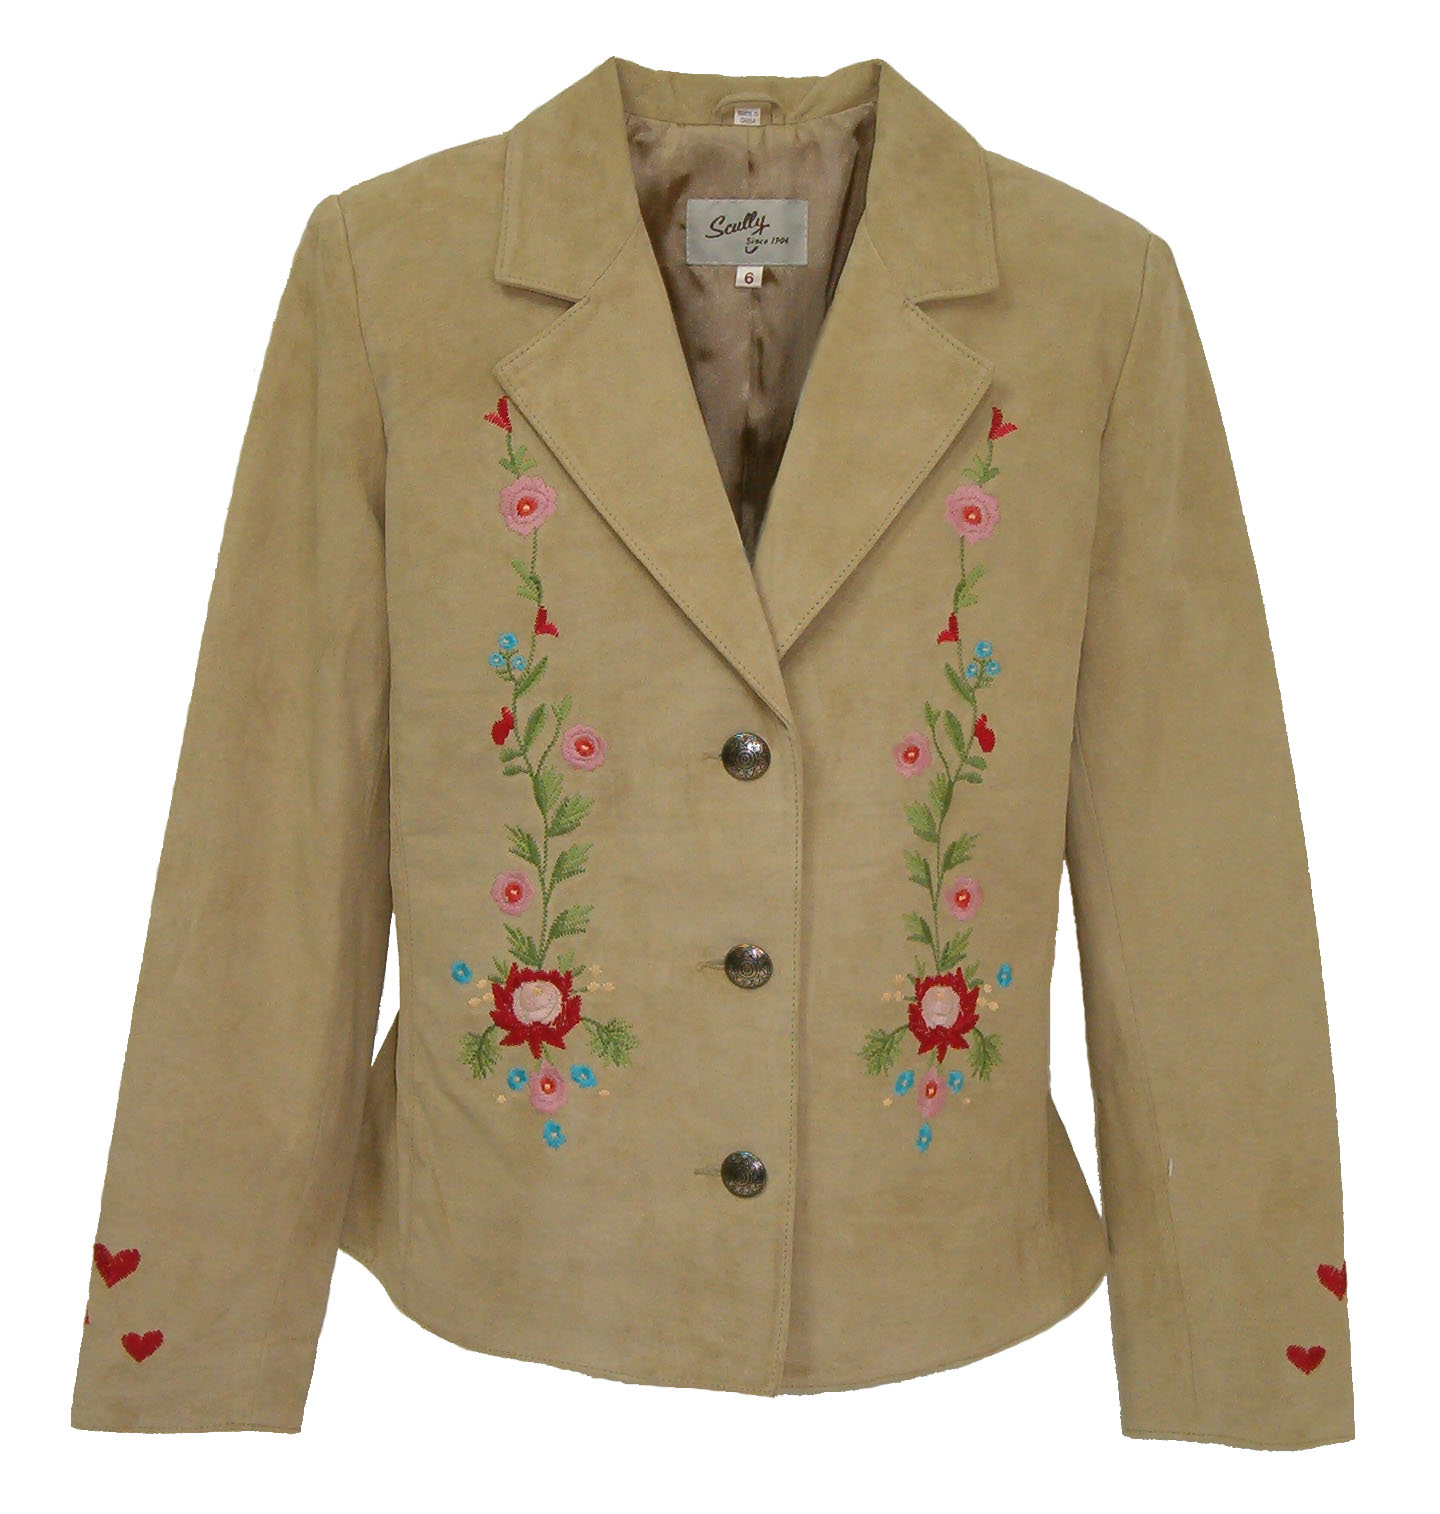 Scully Embroidered Love Jacket